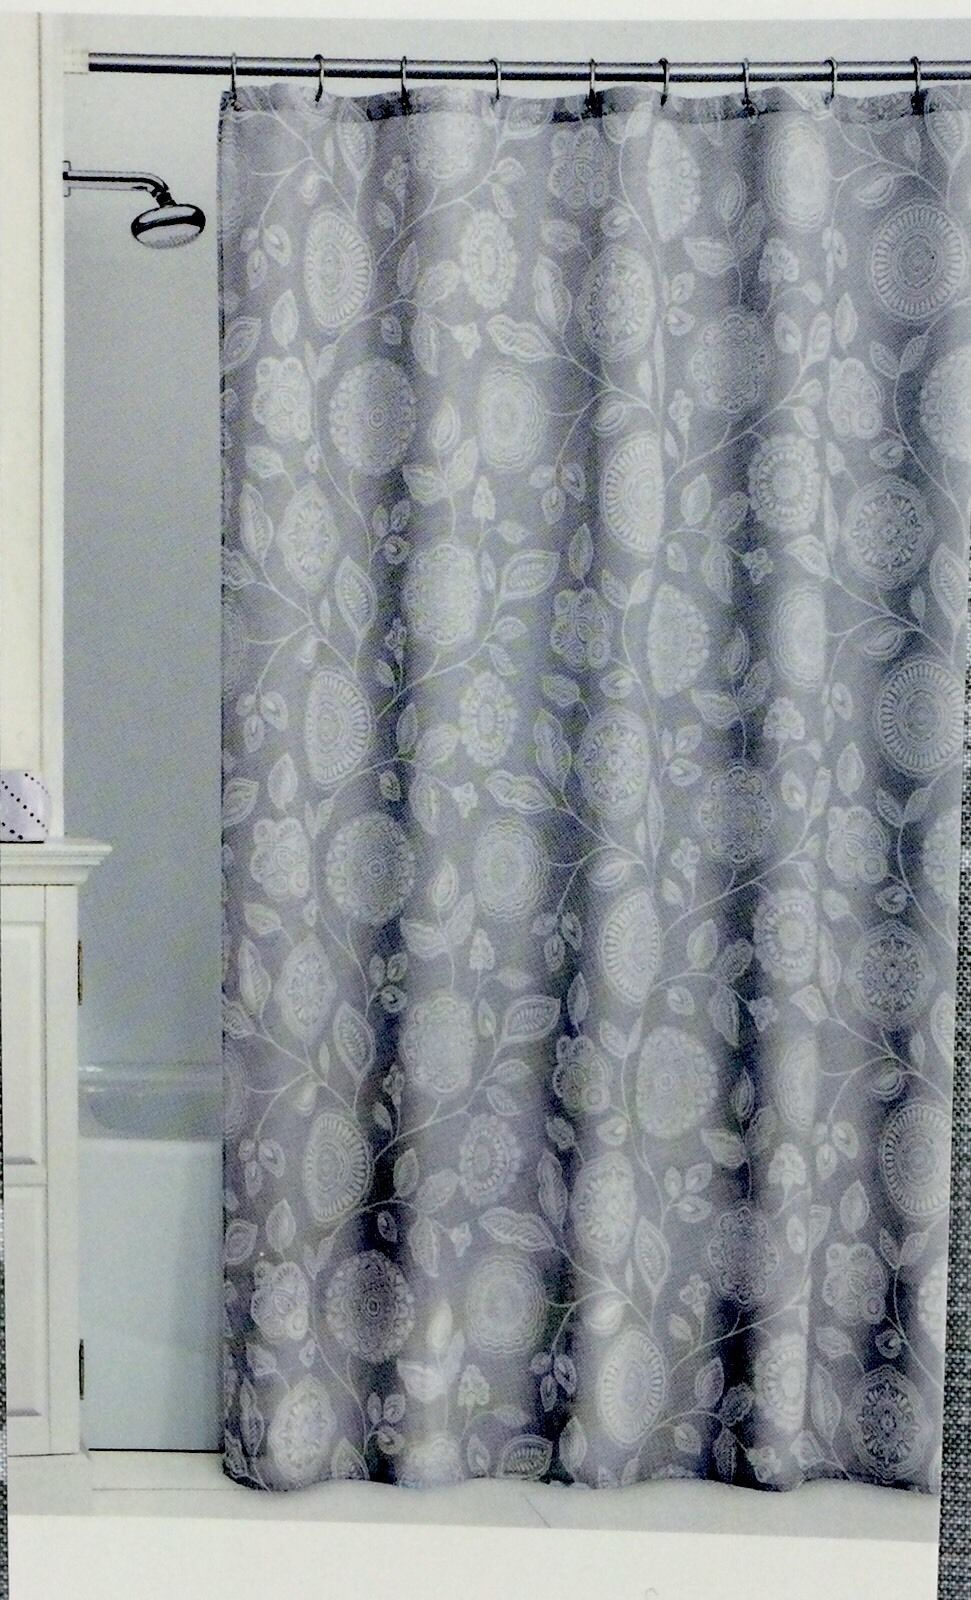 Fabric Shower Curtain 70 X 72 Inch Comfort Bay New In Package Shipped Fast And Free